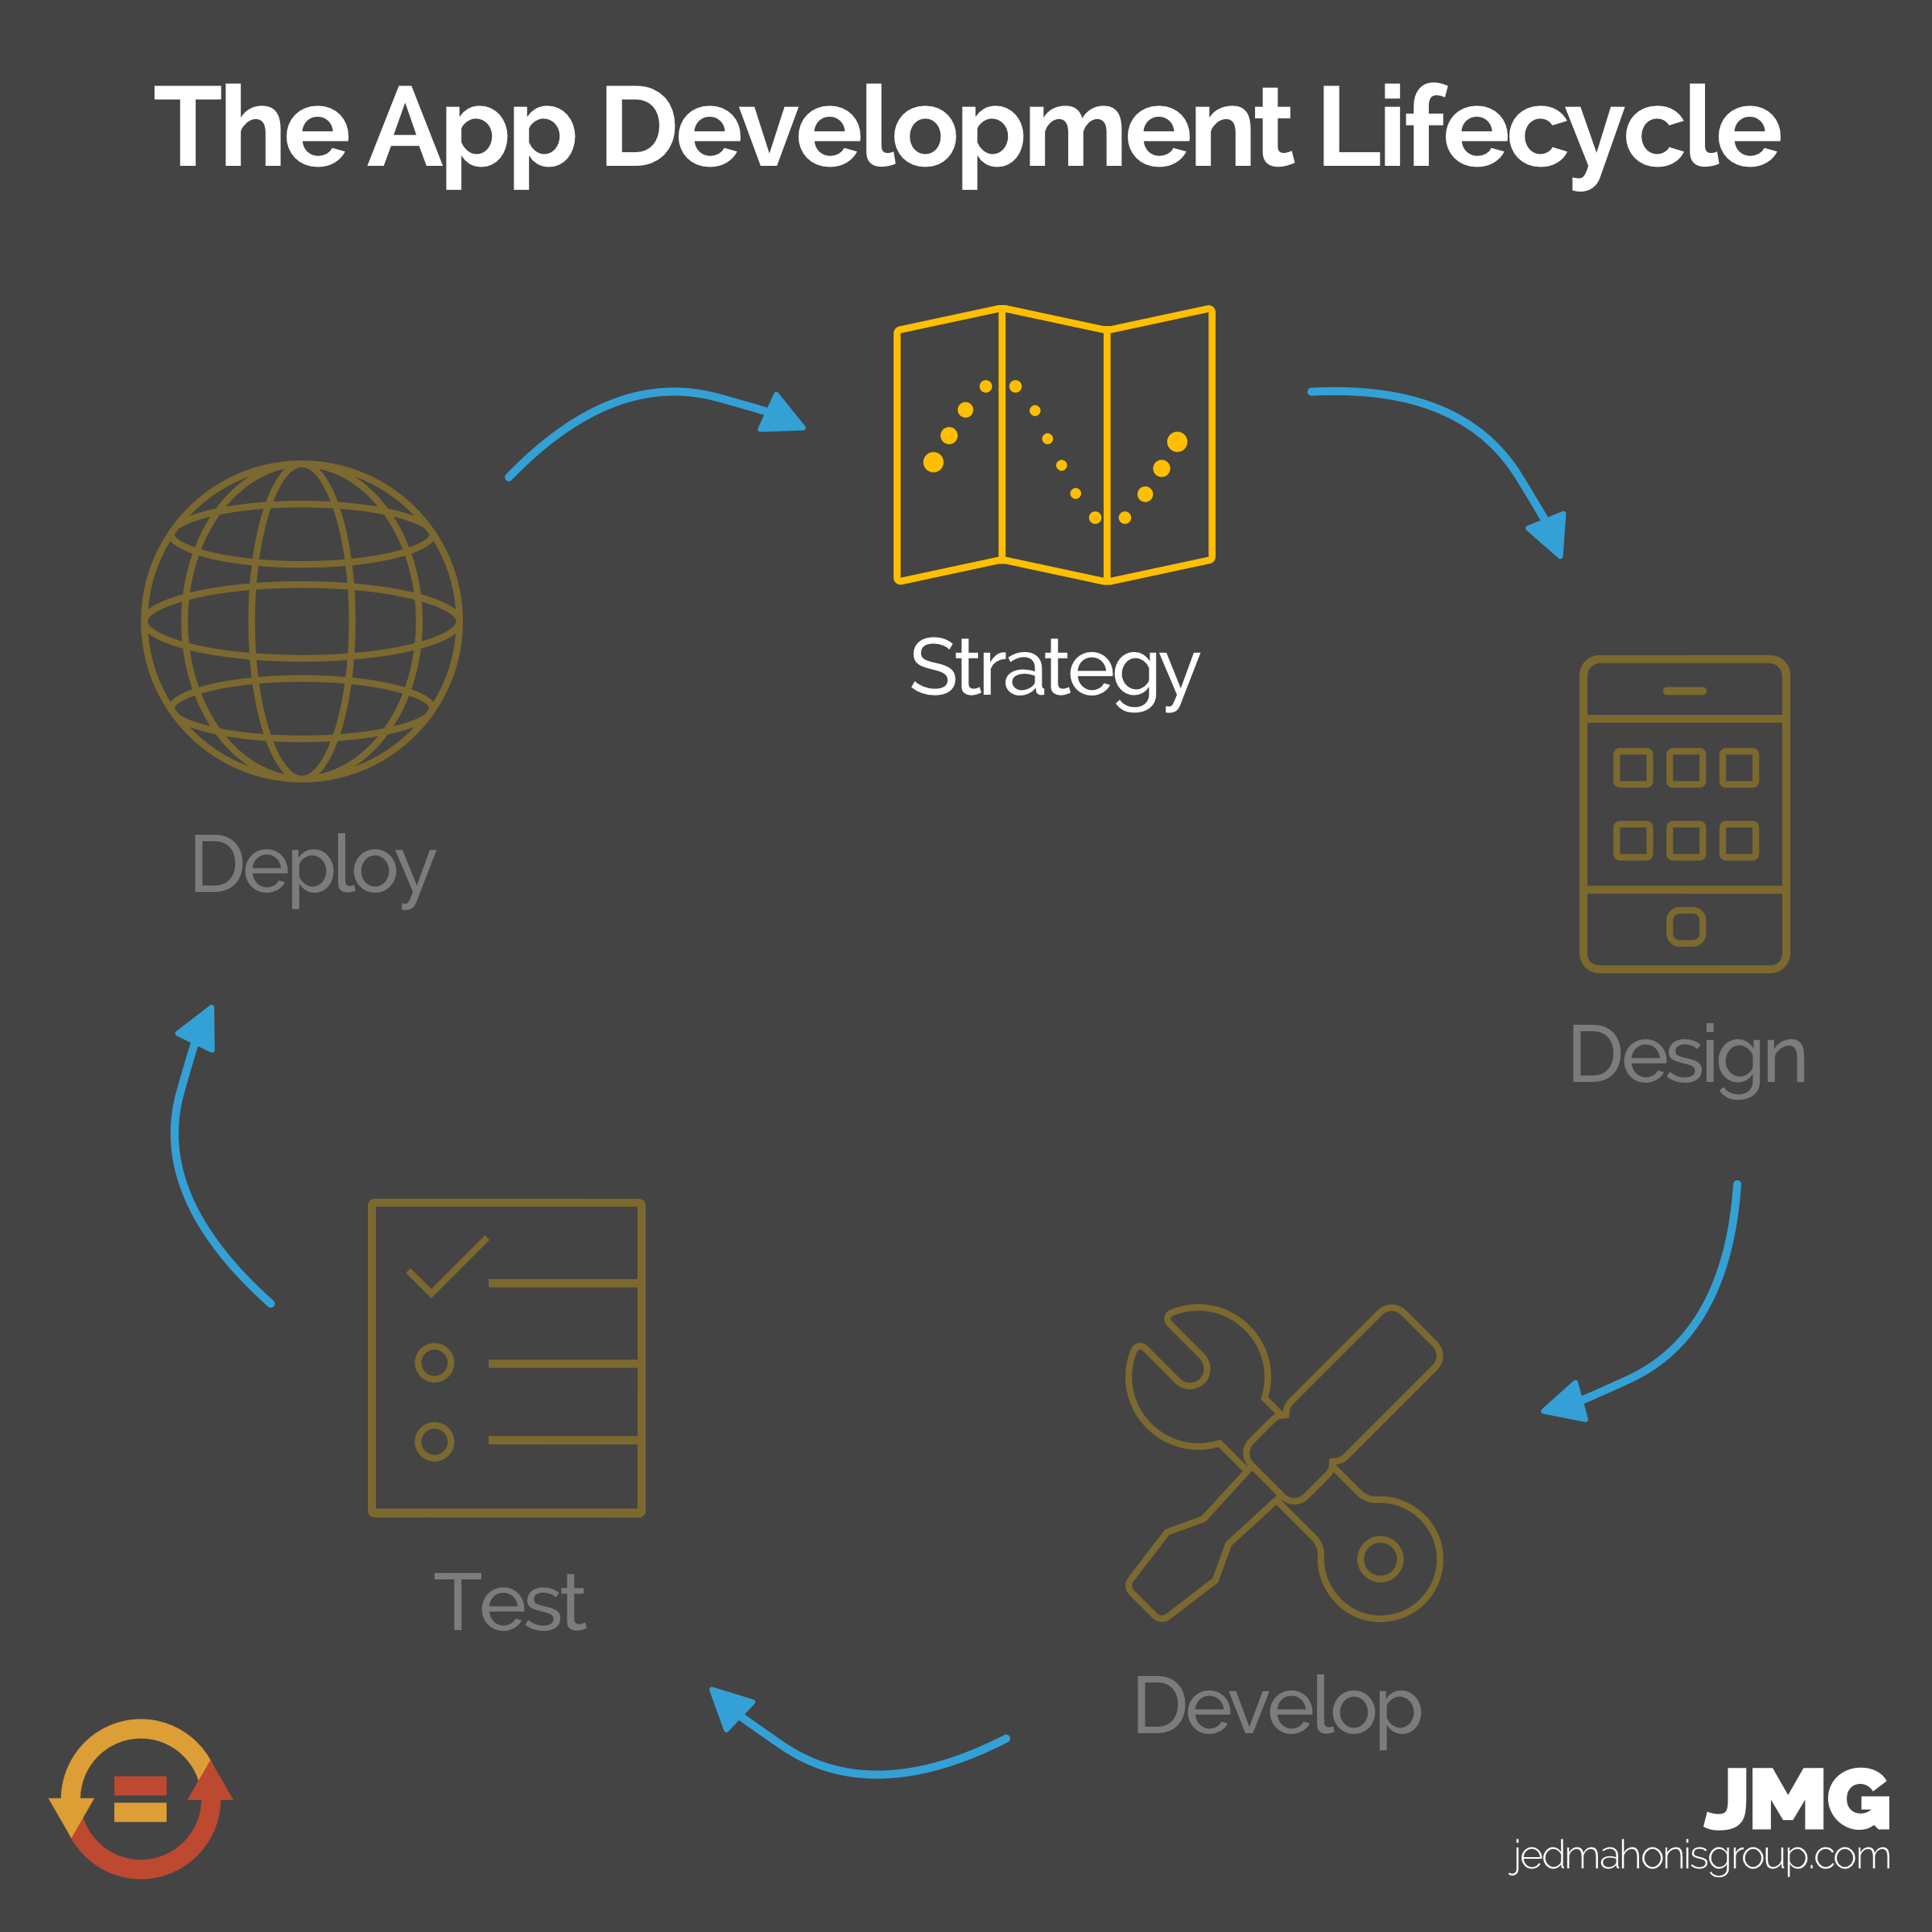 The 5 Stages of the App Development Lifecycle